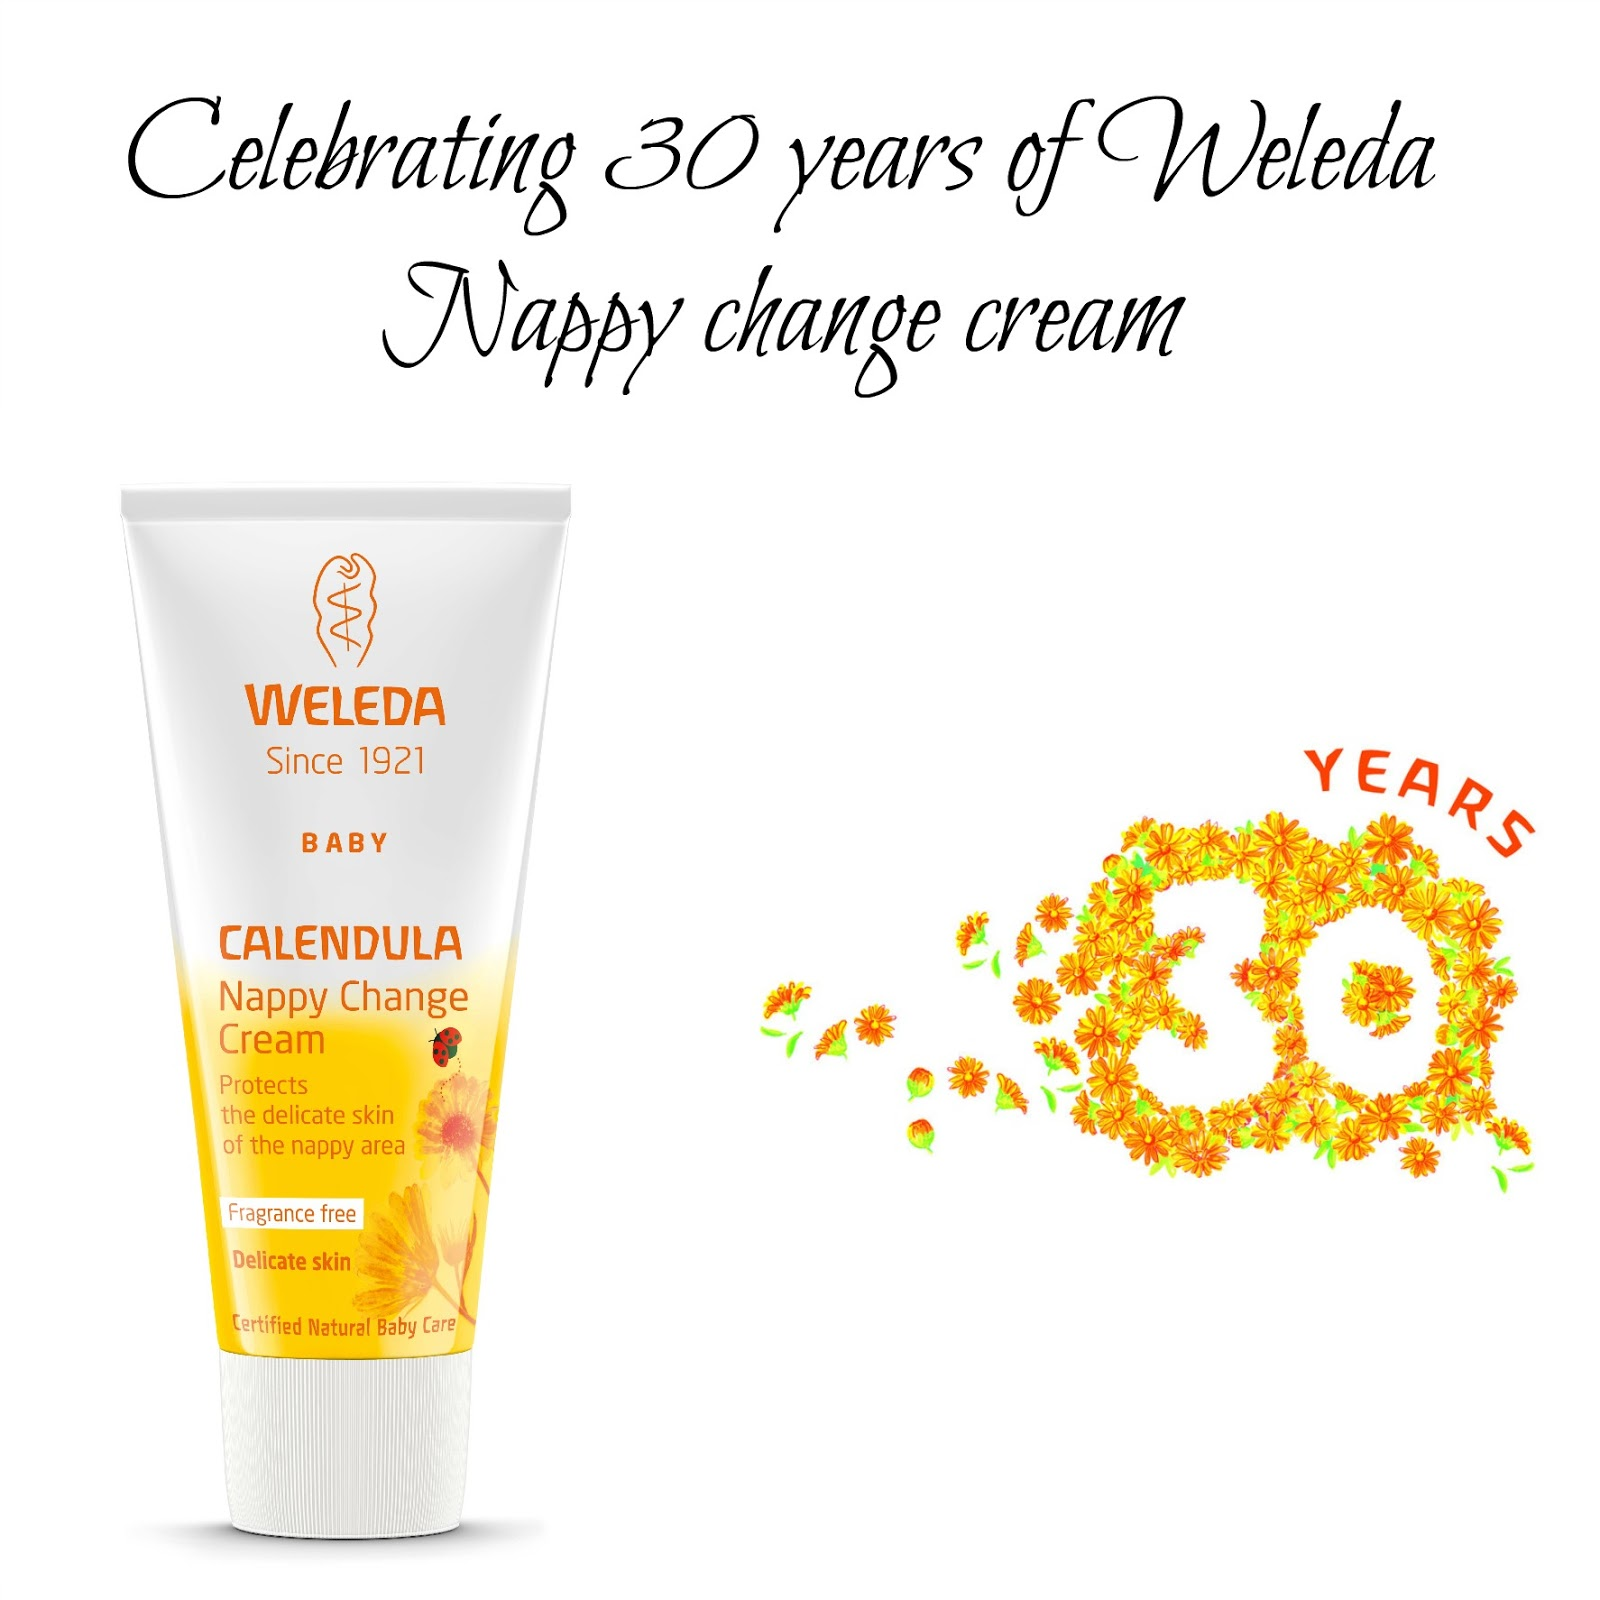 Celebrating 30 years of Weleda Nappy change cream